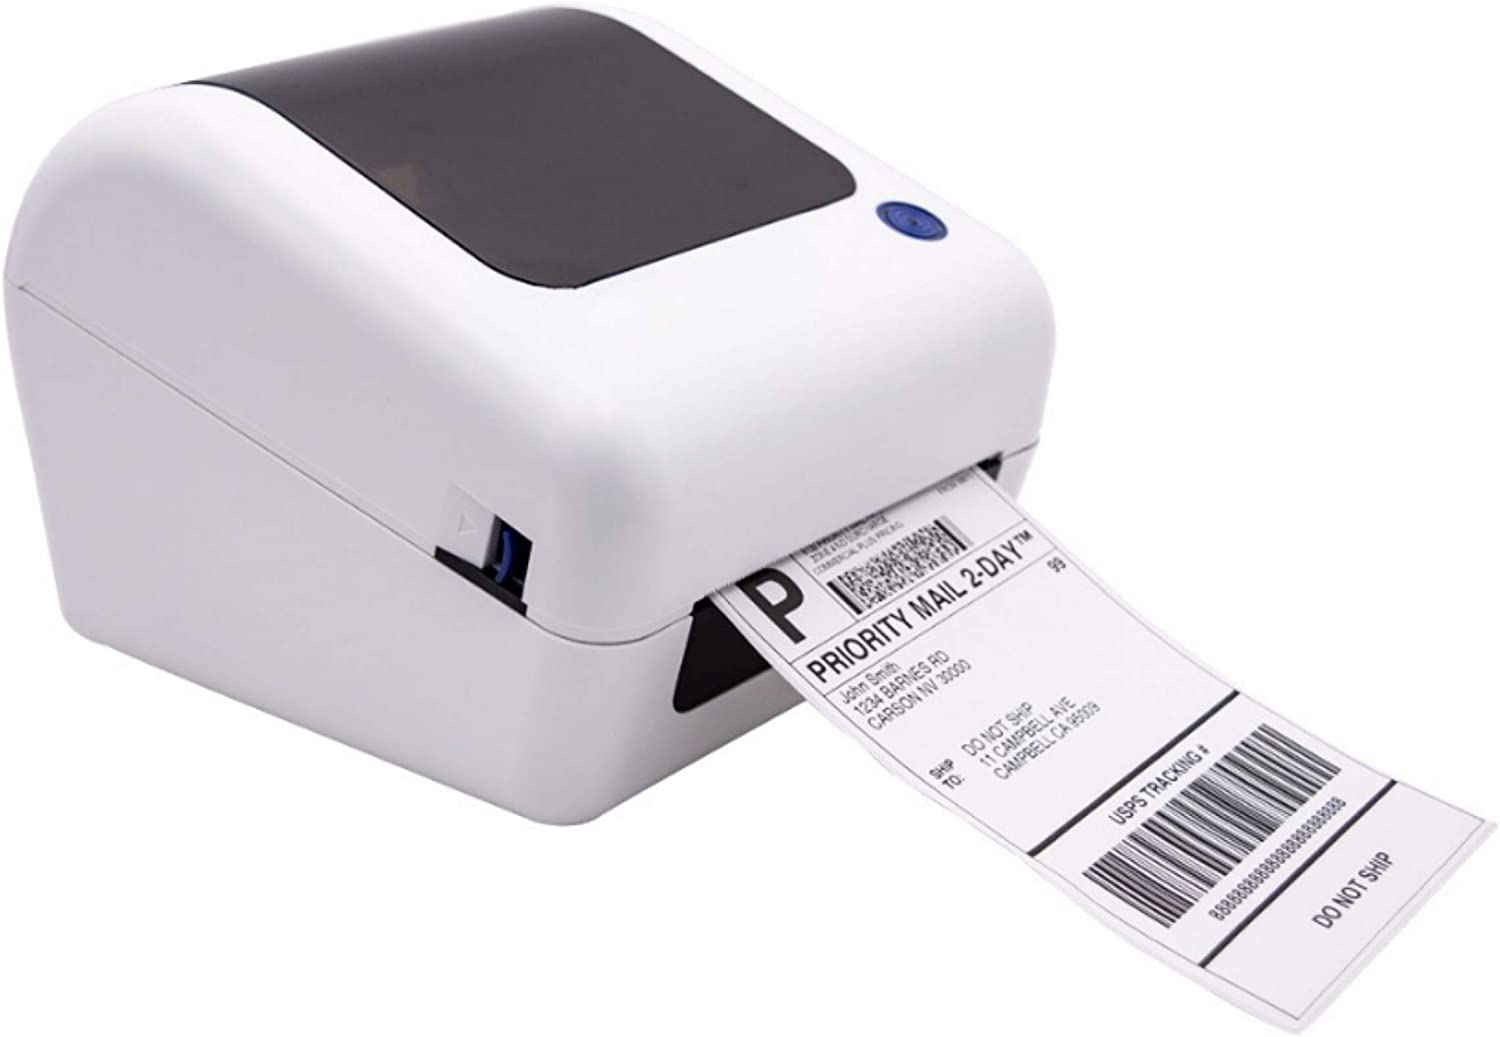 Dododuck BY-245 | Commercial Grade High Speed Thermal Label Printer for 4X6 Labels | USB Version | Compatible with Windows, MacOS, Linux, Android and iOS Systems